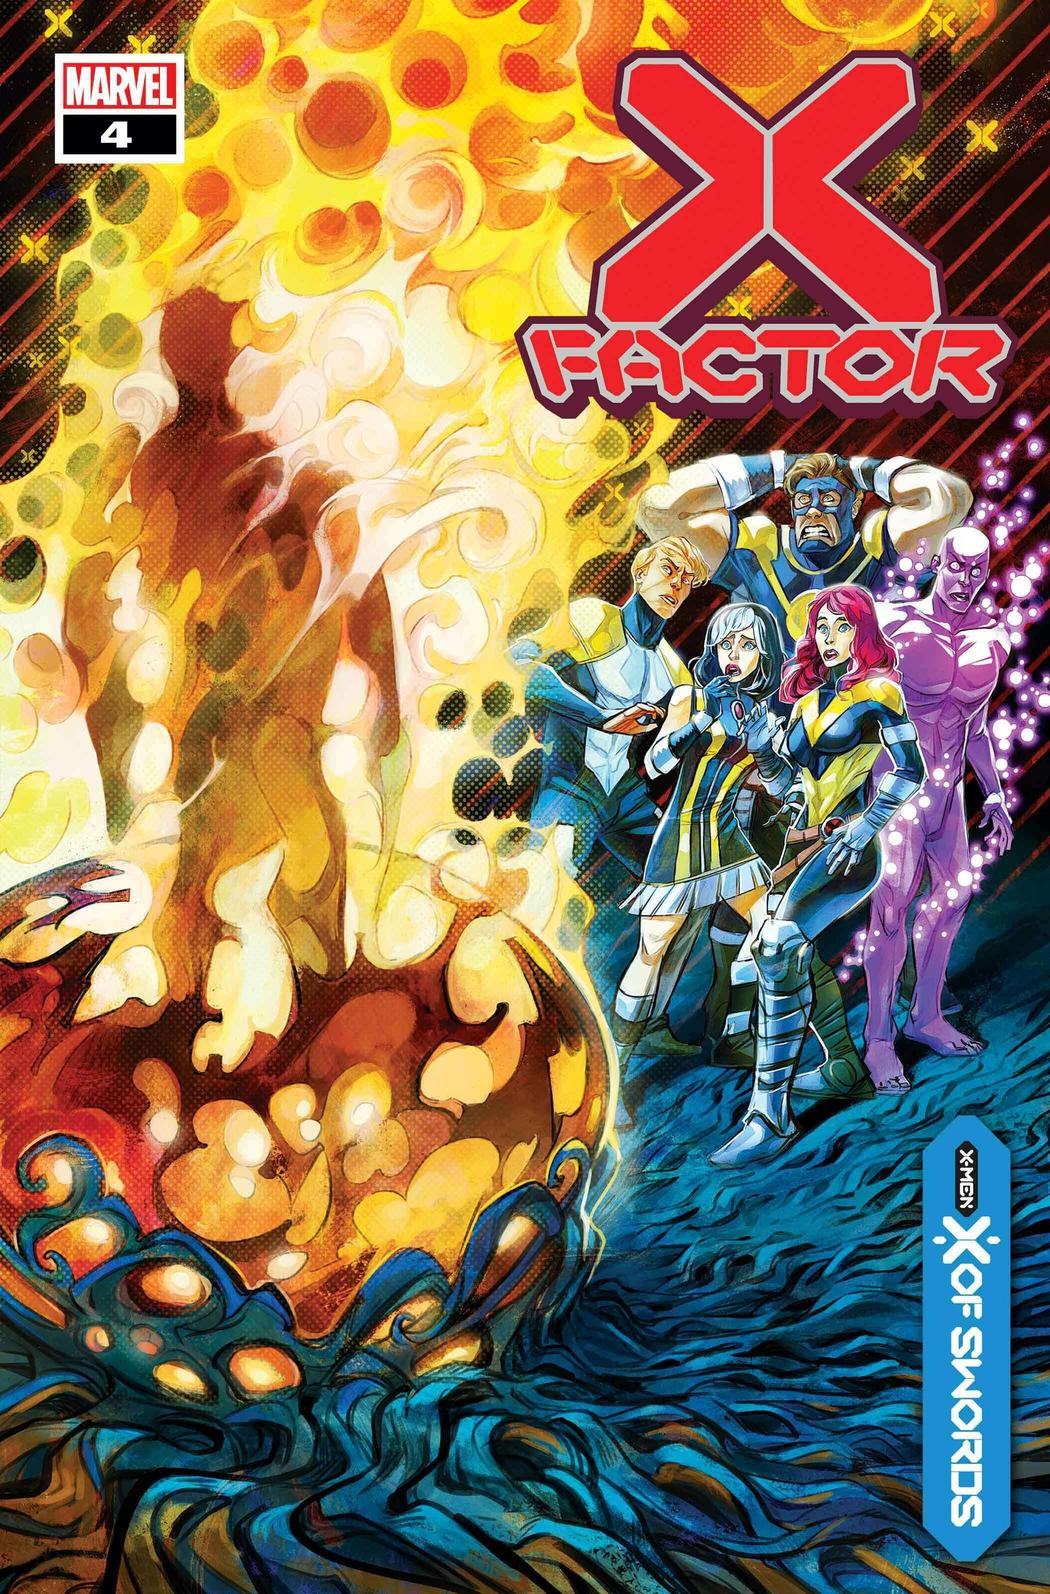 X-FACTOR #4 WRITTEN BYLEAH WILLIAMS, ART BY CARLOS GOMEZ, COVER BY IVAN SHAVRIN